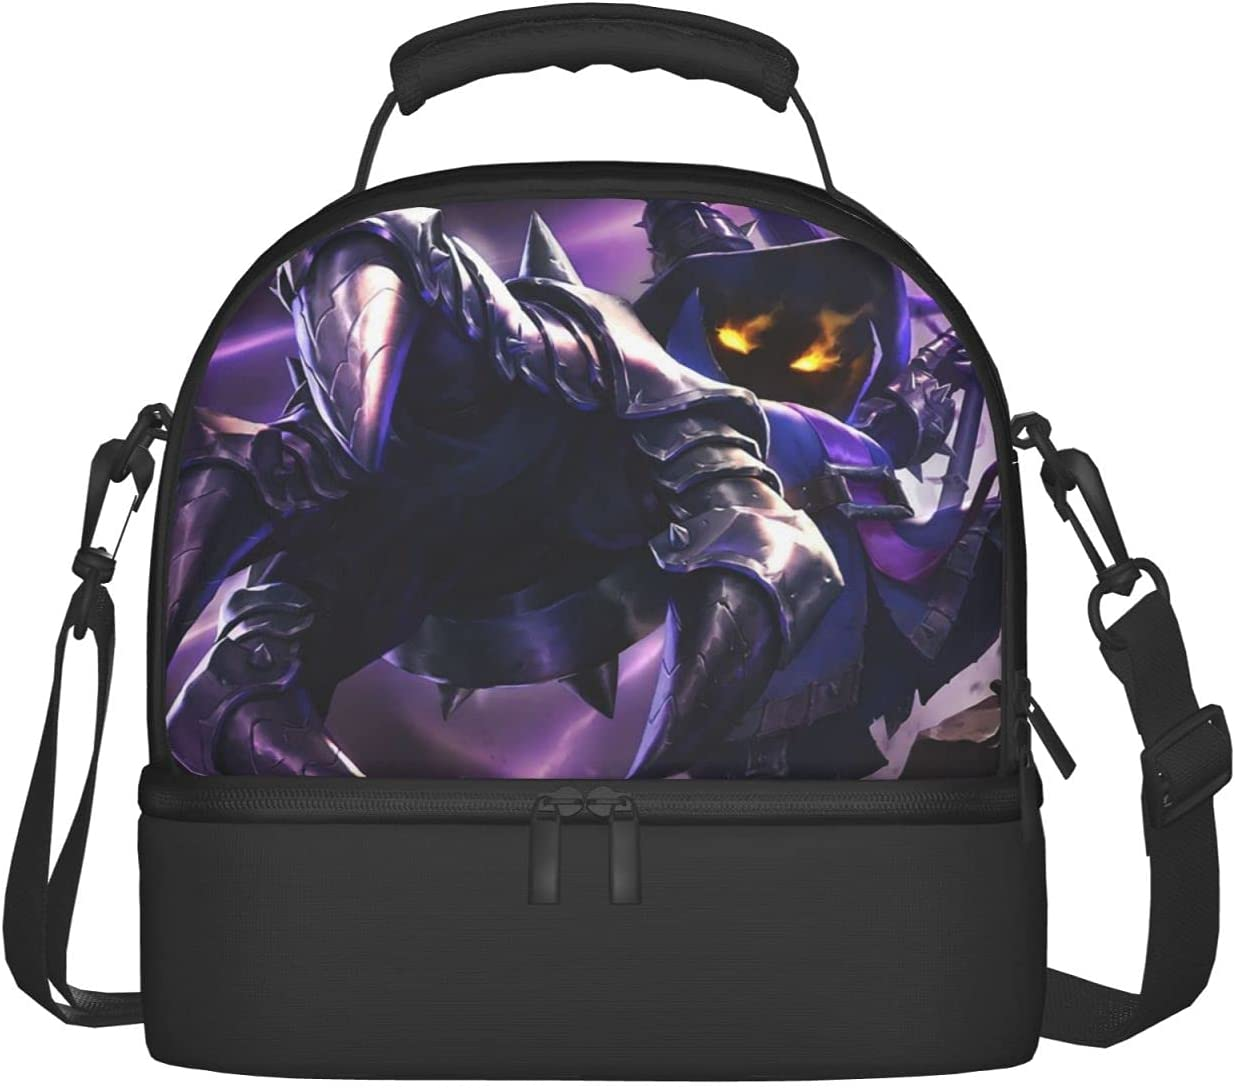 Veigar The Tiny Master of Evil Dual Import Low price Bag Compartm Lunch Insulated